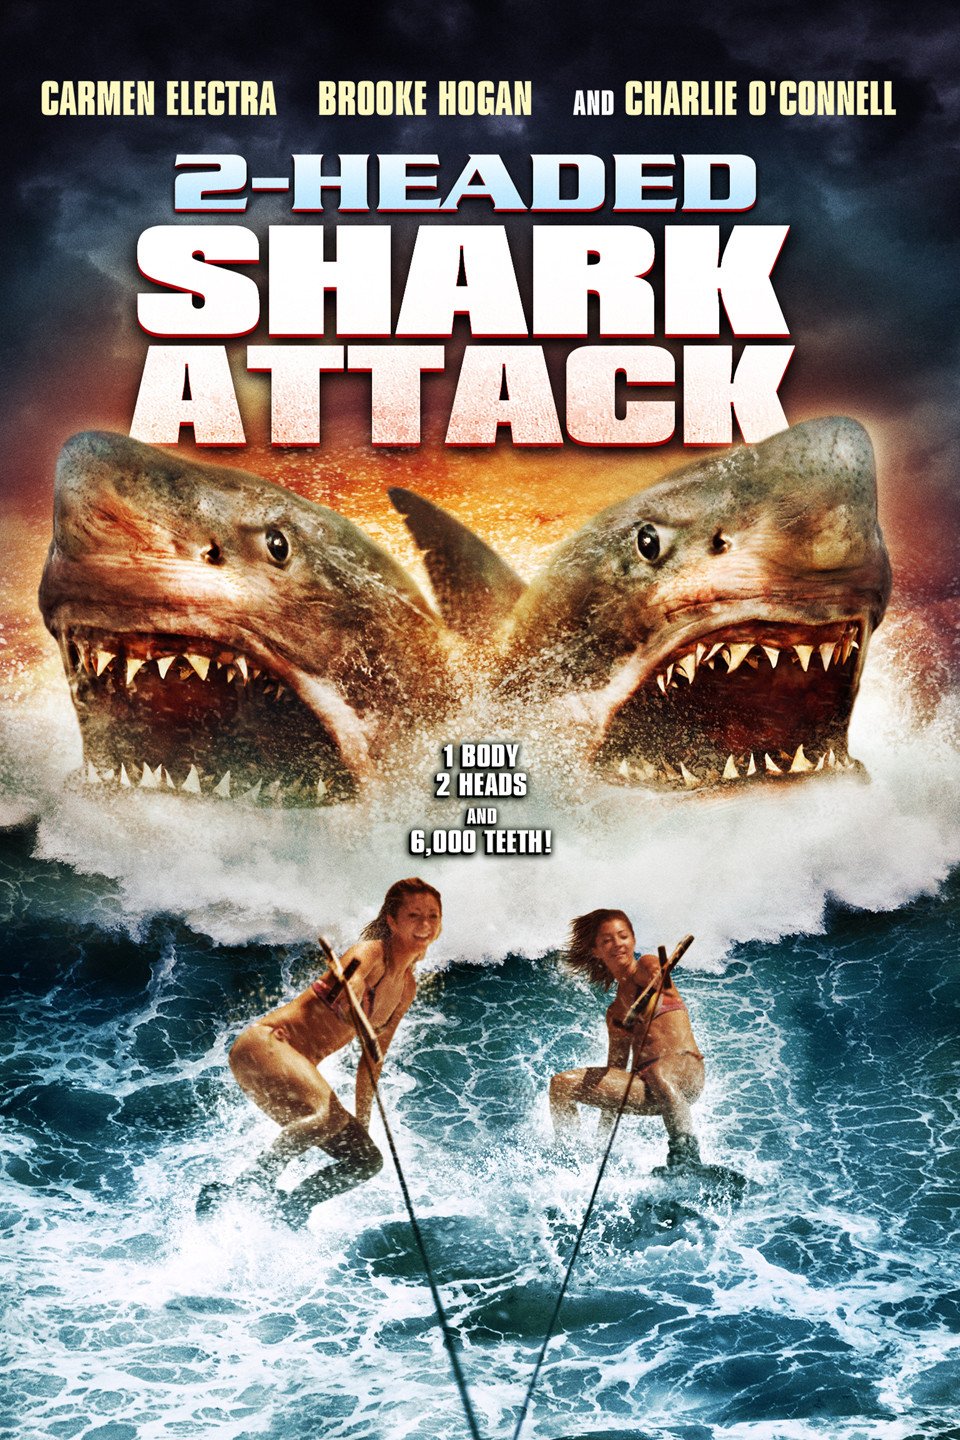 Cá Mập 2 Đầu - 2 Headed Shark Attack